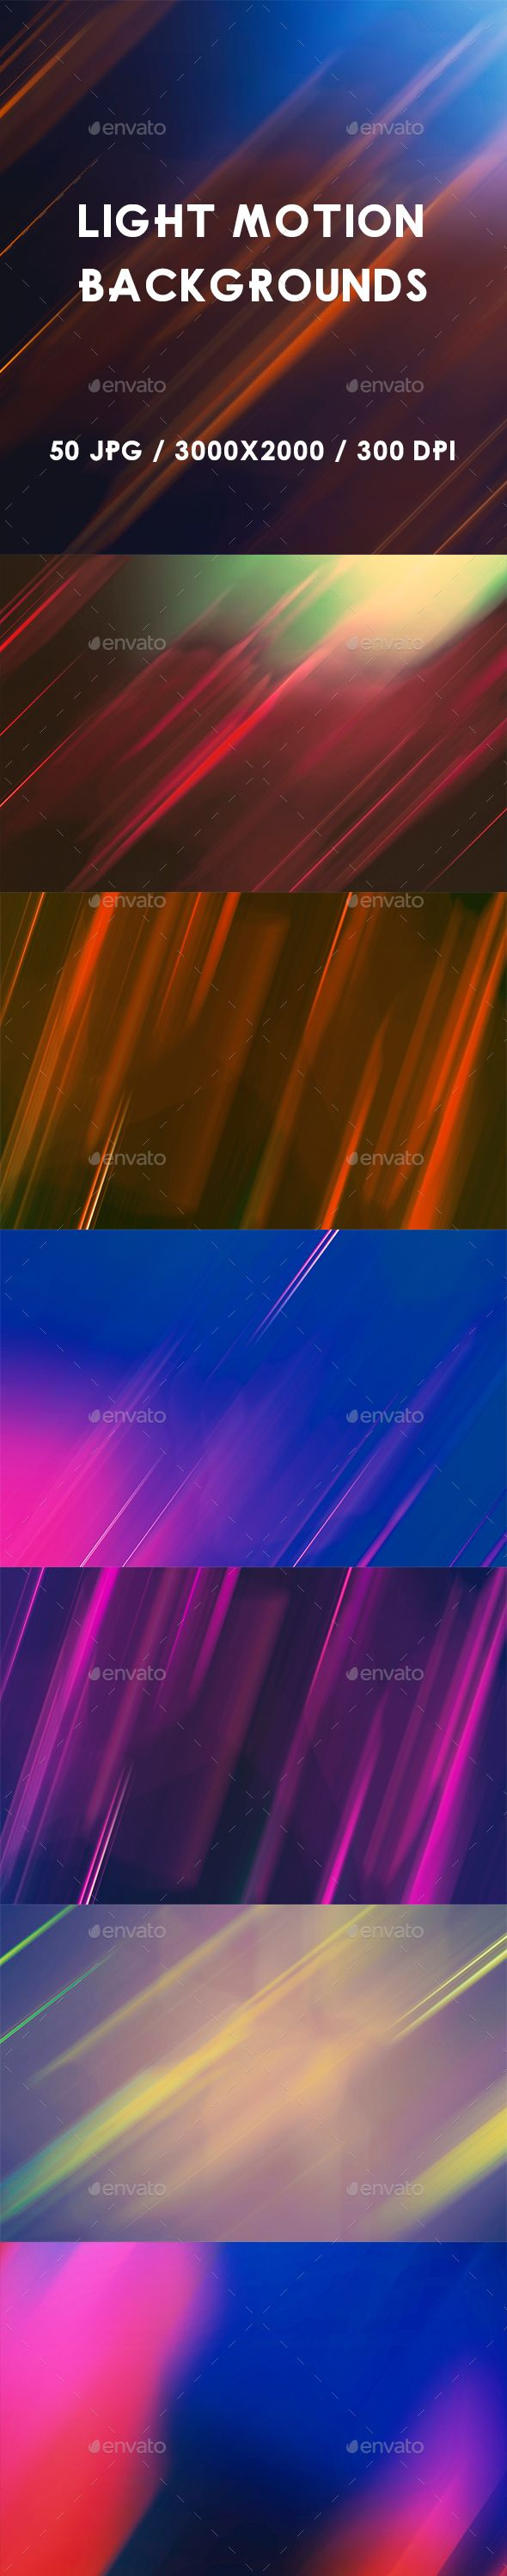 50 Light Motion Backgrounds - Abstract #Backgrounds Download here: https://graphicriver.net/item/50-light-motion-backgrounds/19455643?ref=alena994